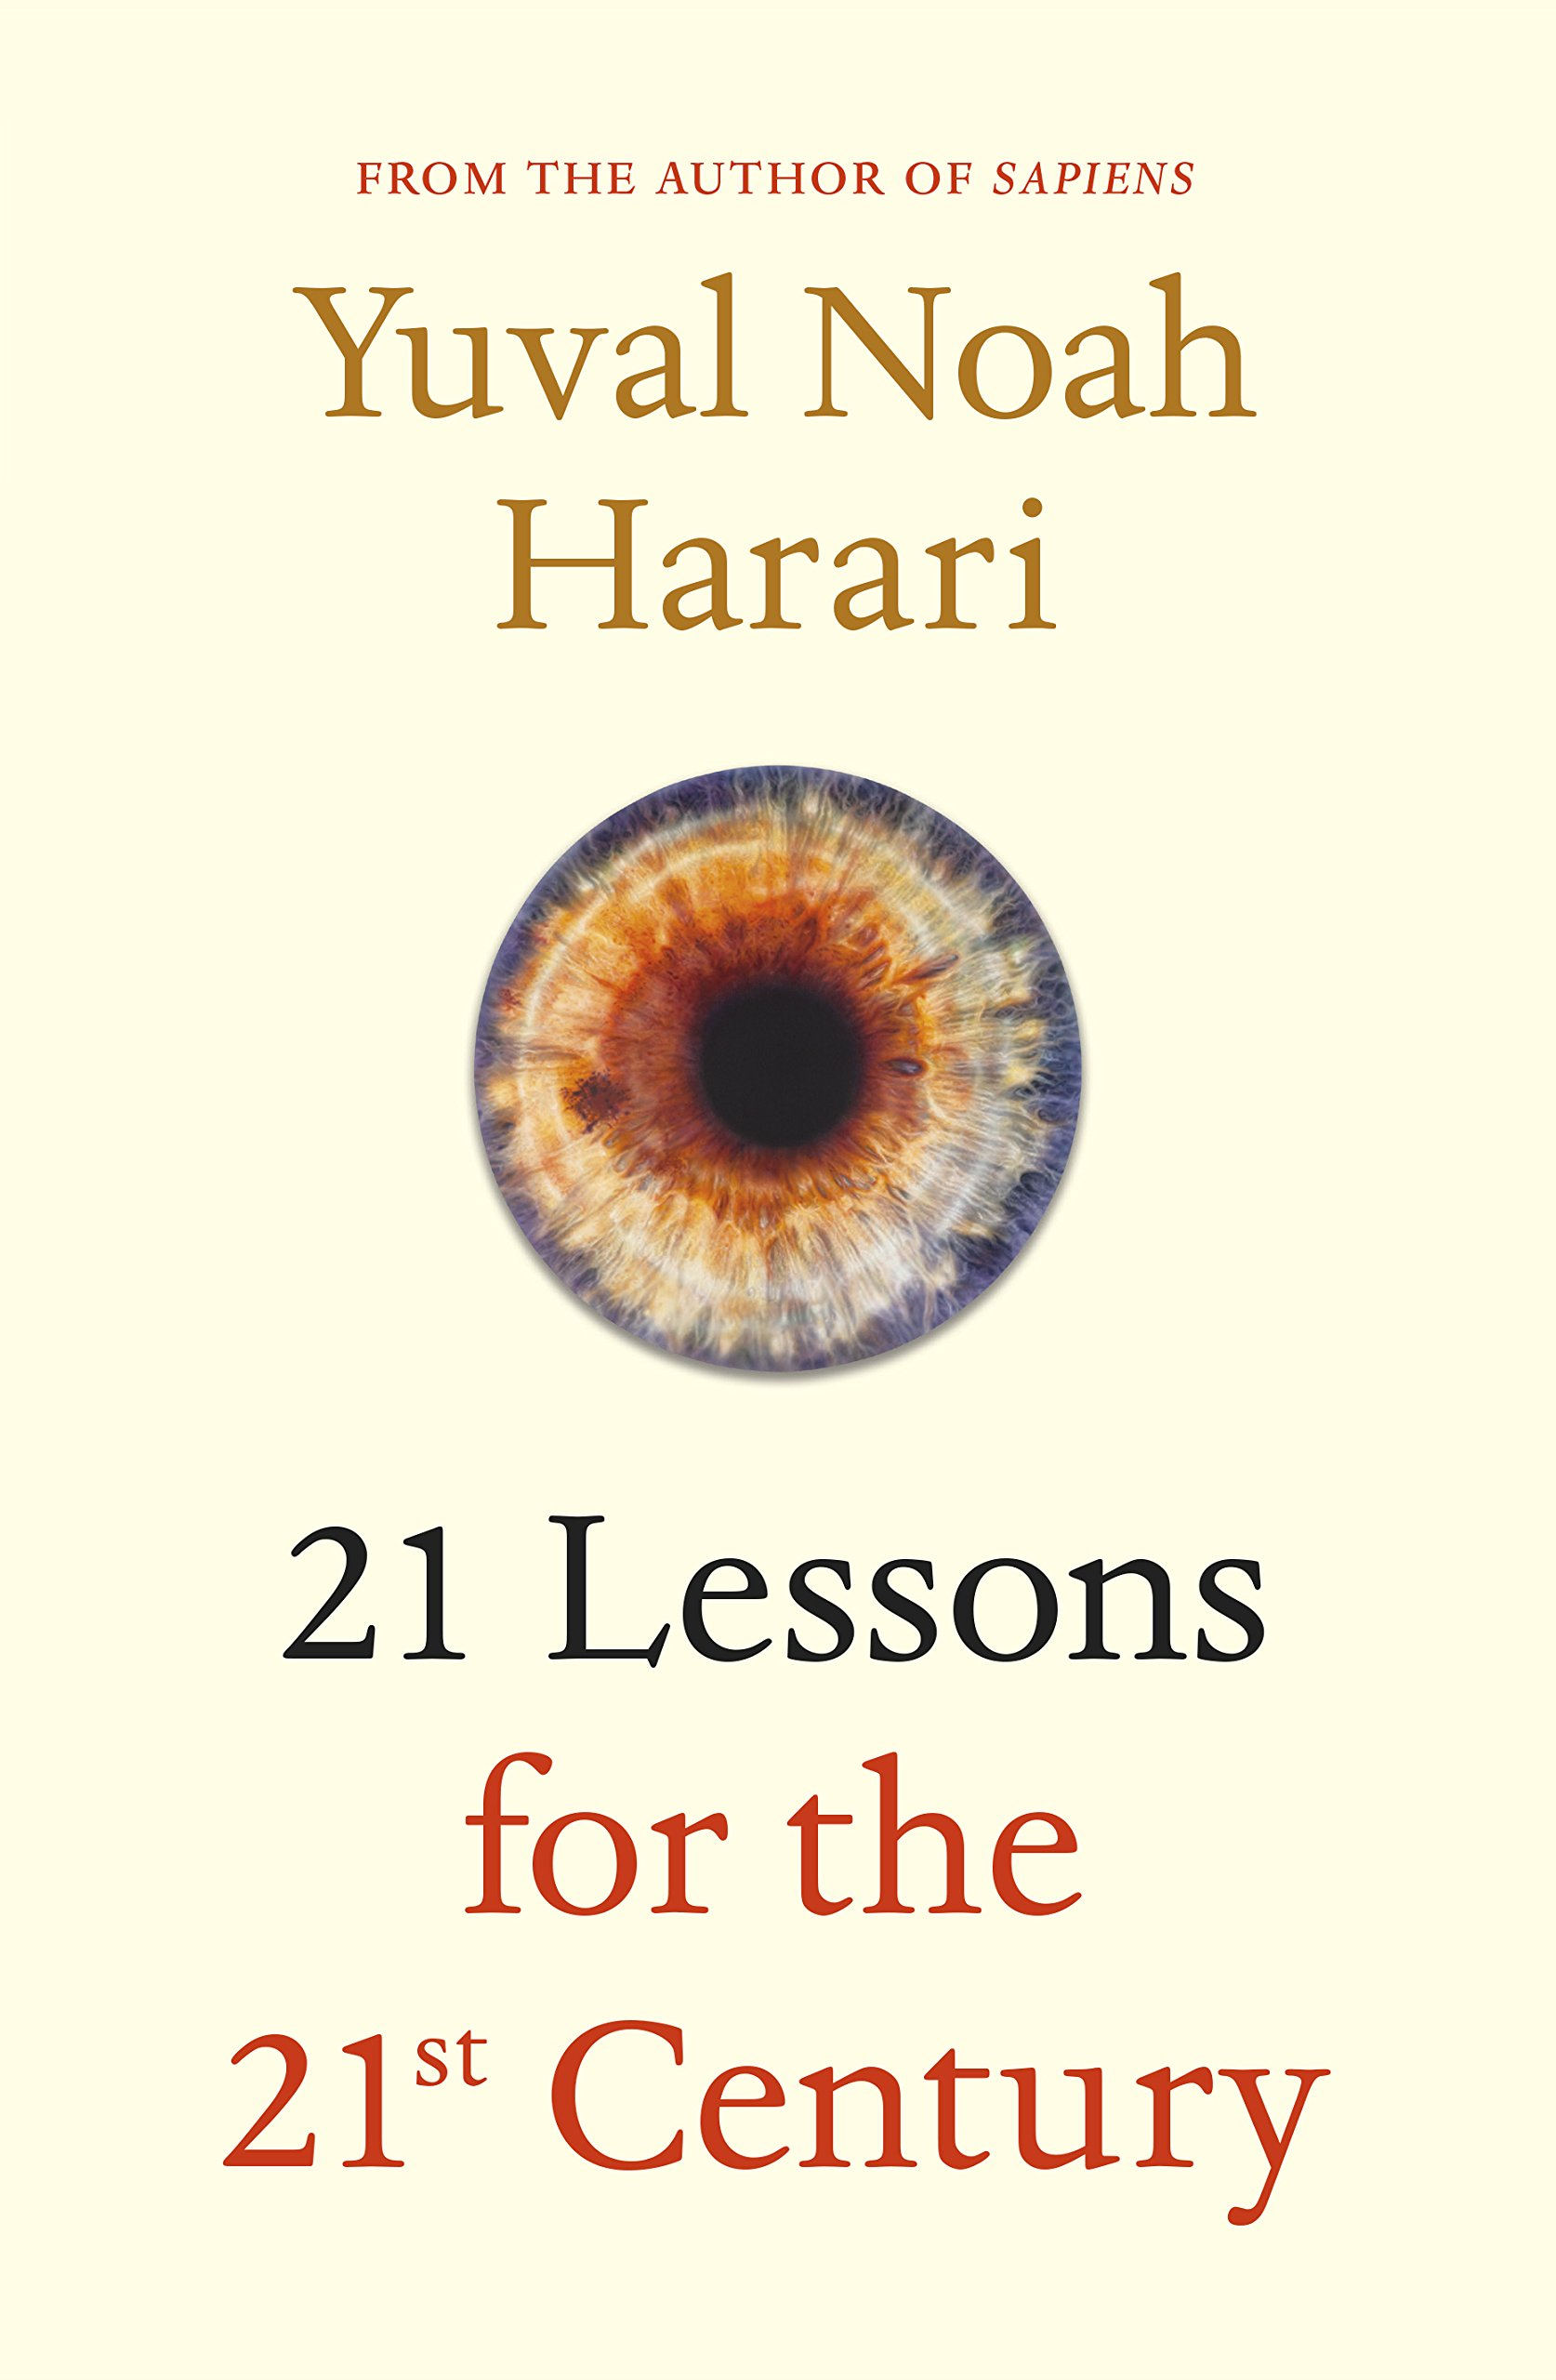 21 Lessons for the 21st Century - Yuval Noah Harari [kindle] [mobi]